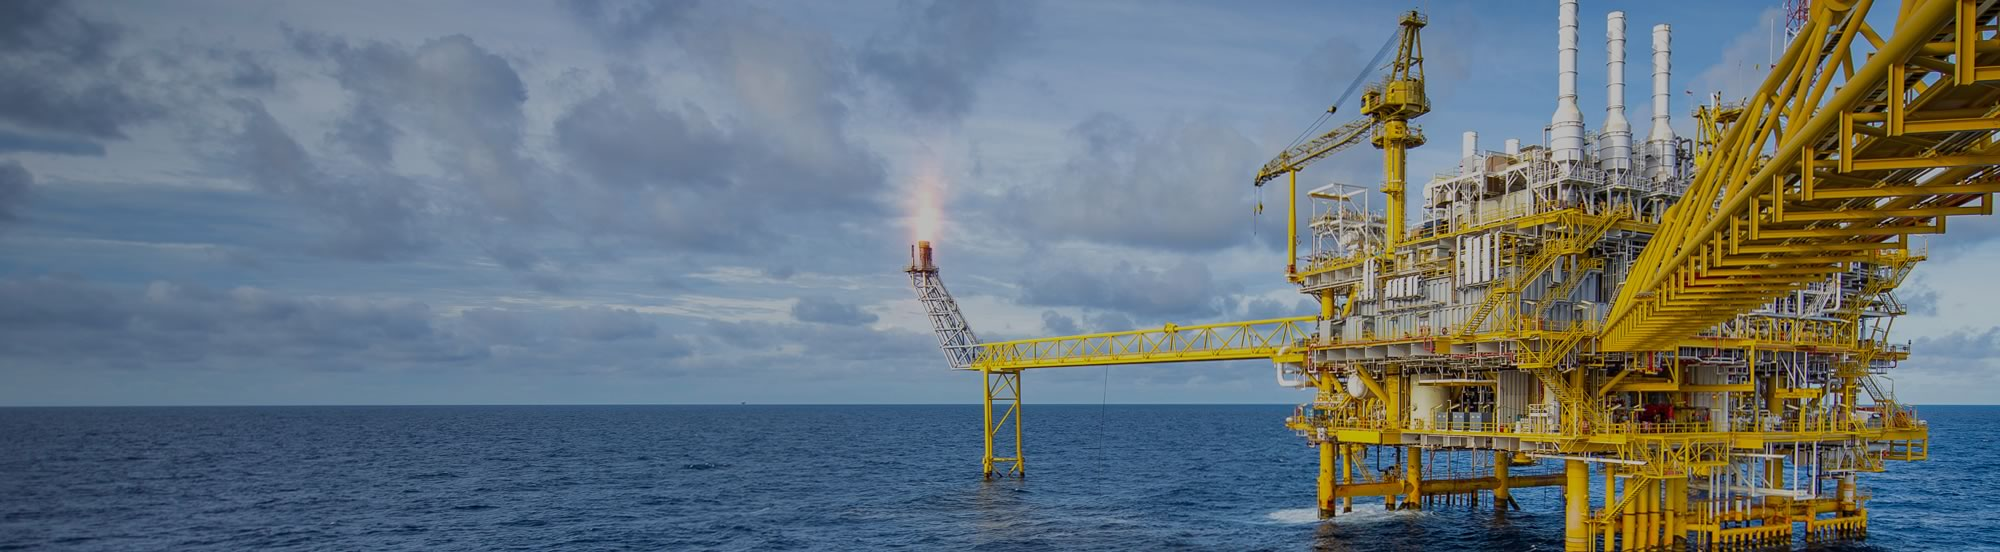 Prophes oil and gas background rig image